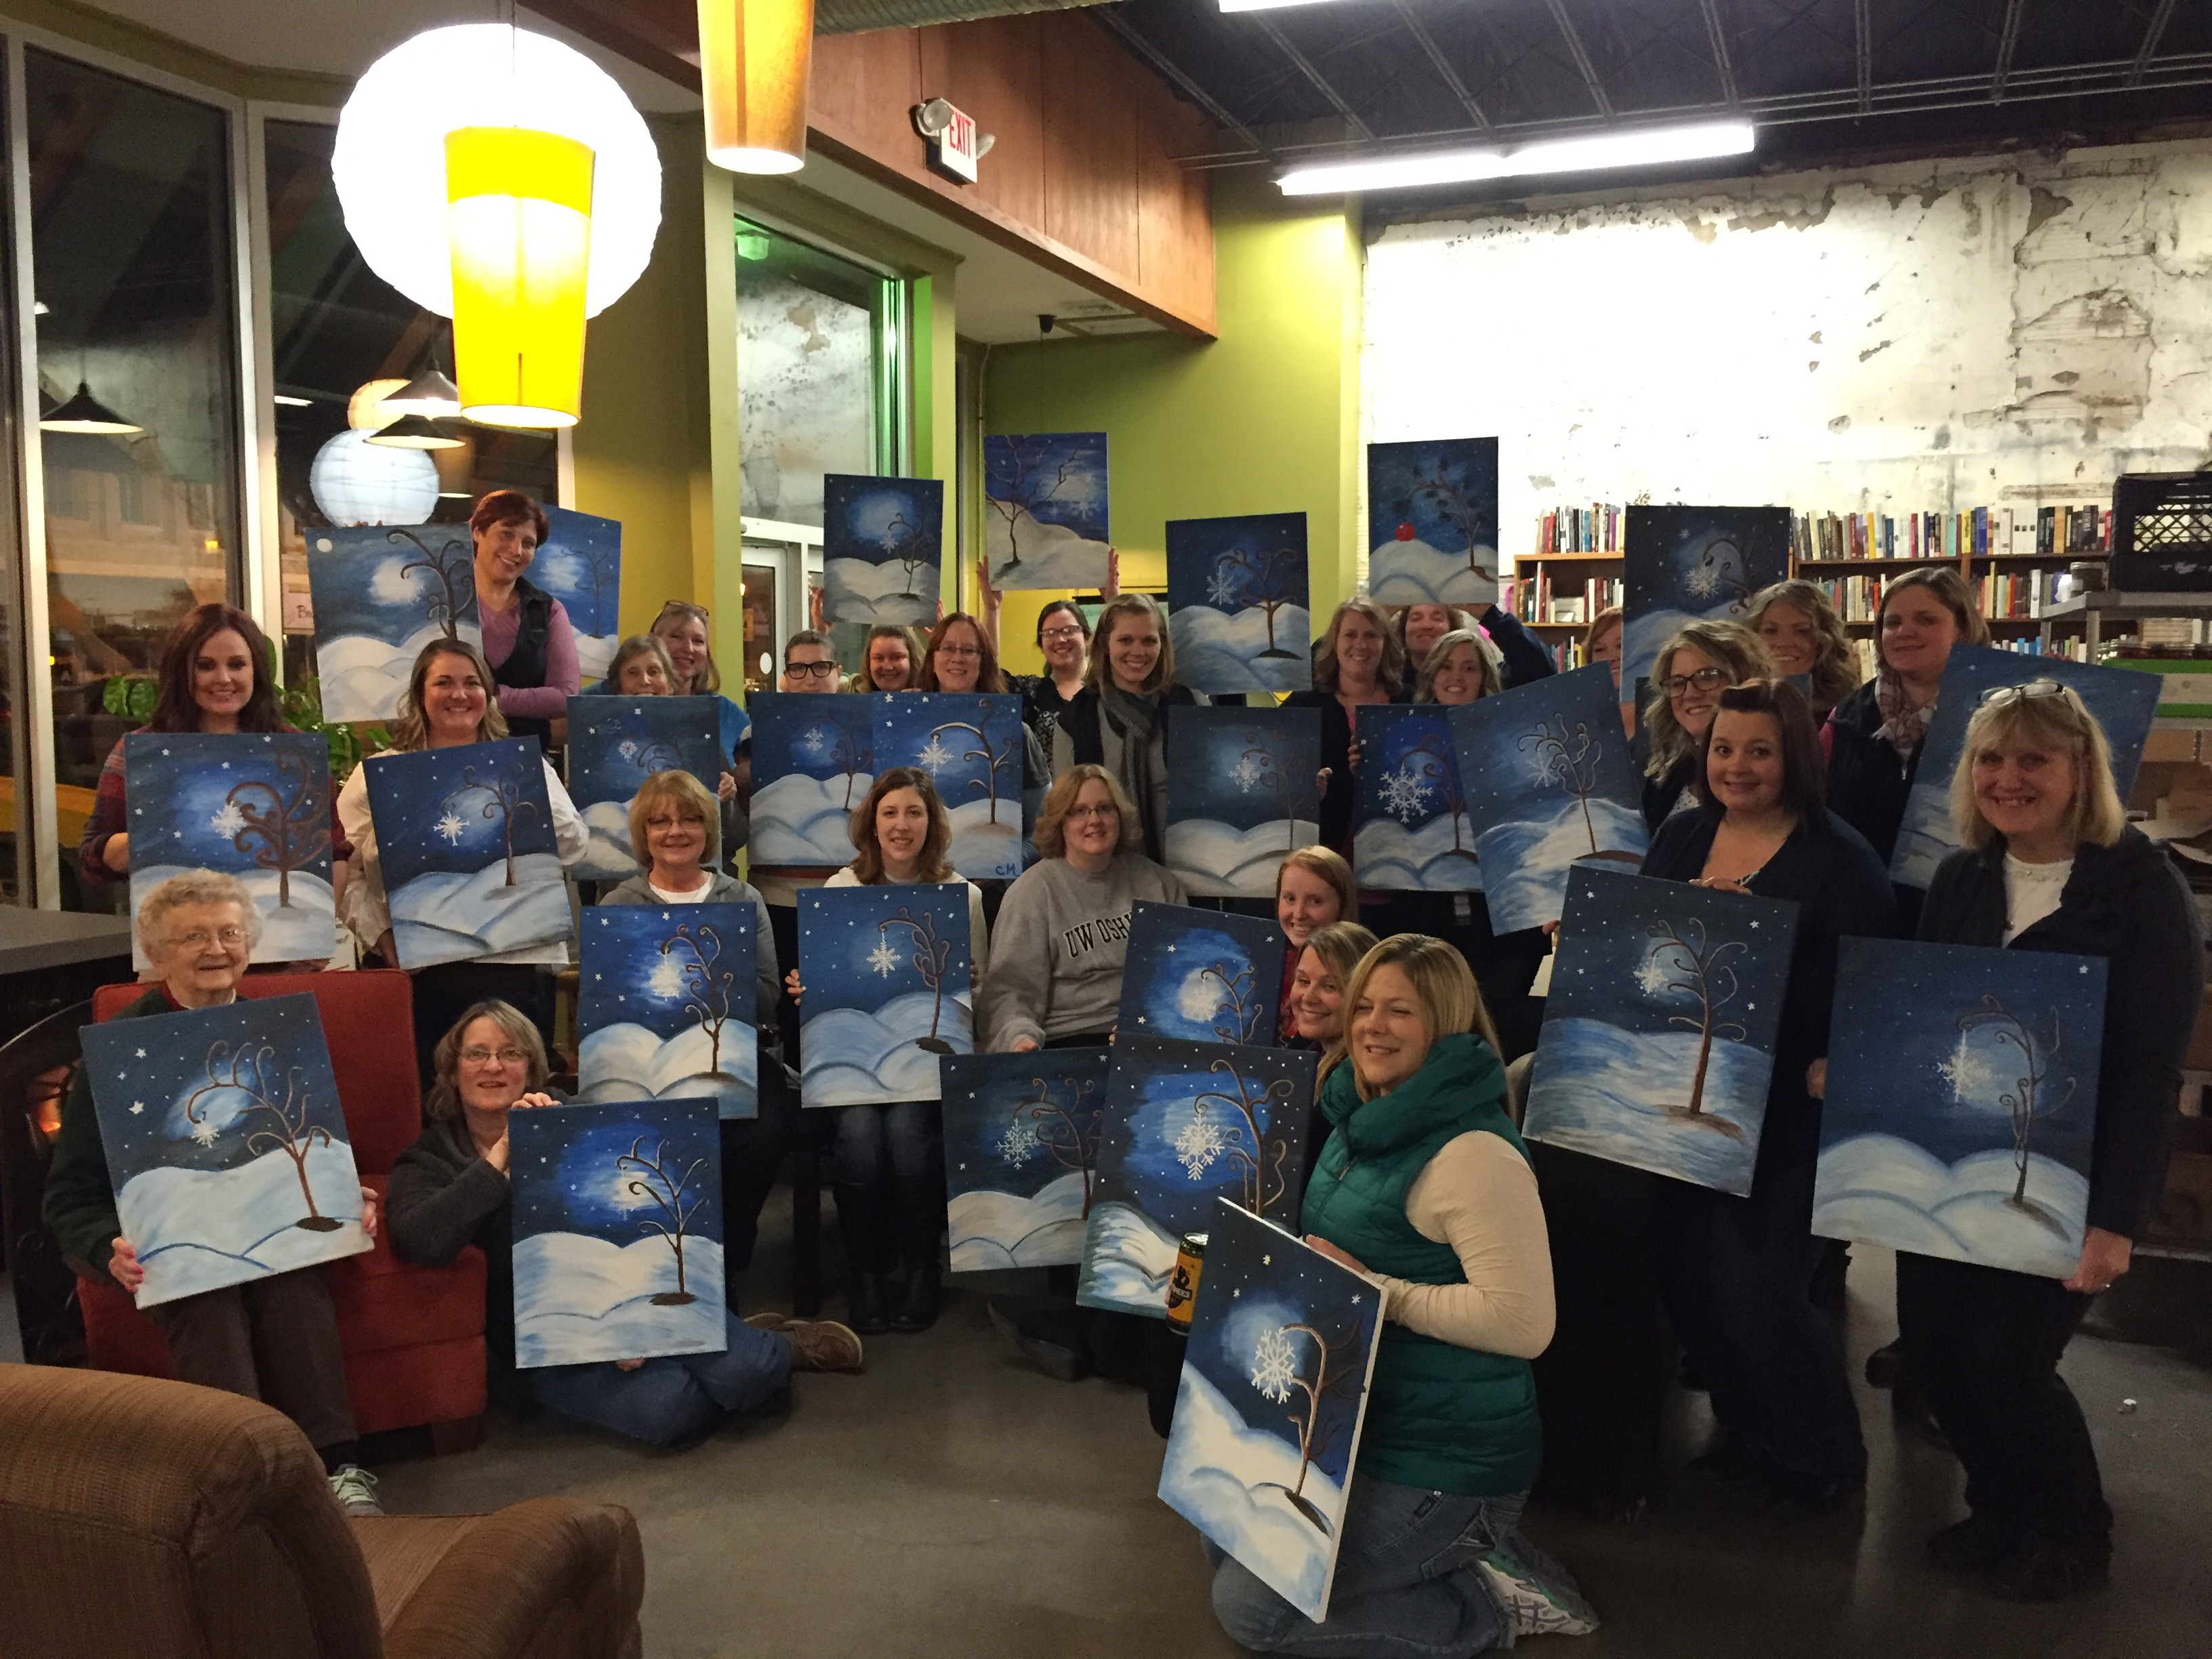 First class at Bushel & Peck's was FANTASTIC! Everyone enjoyed drinks, food and painting Snowflake Trees! 12/18/15